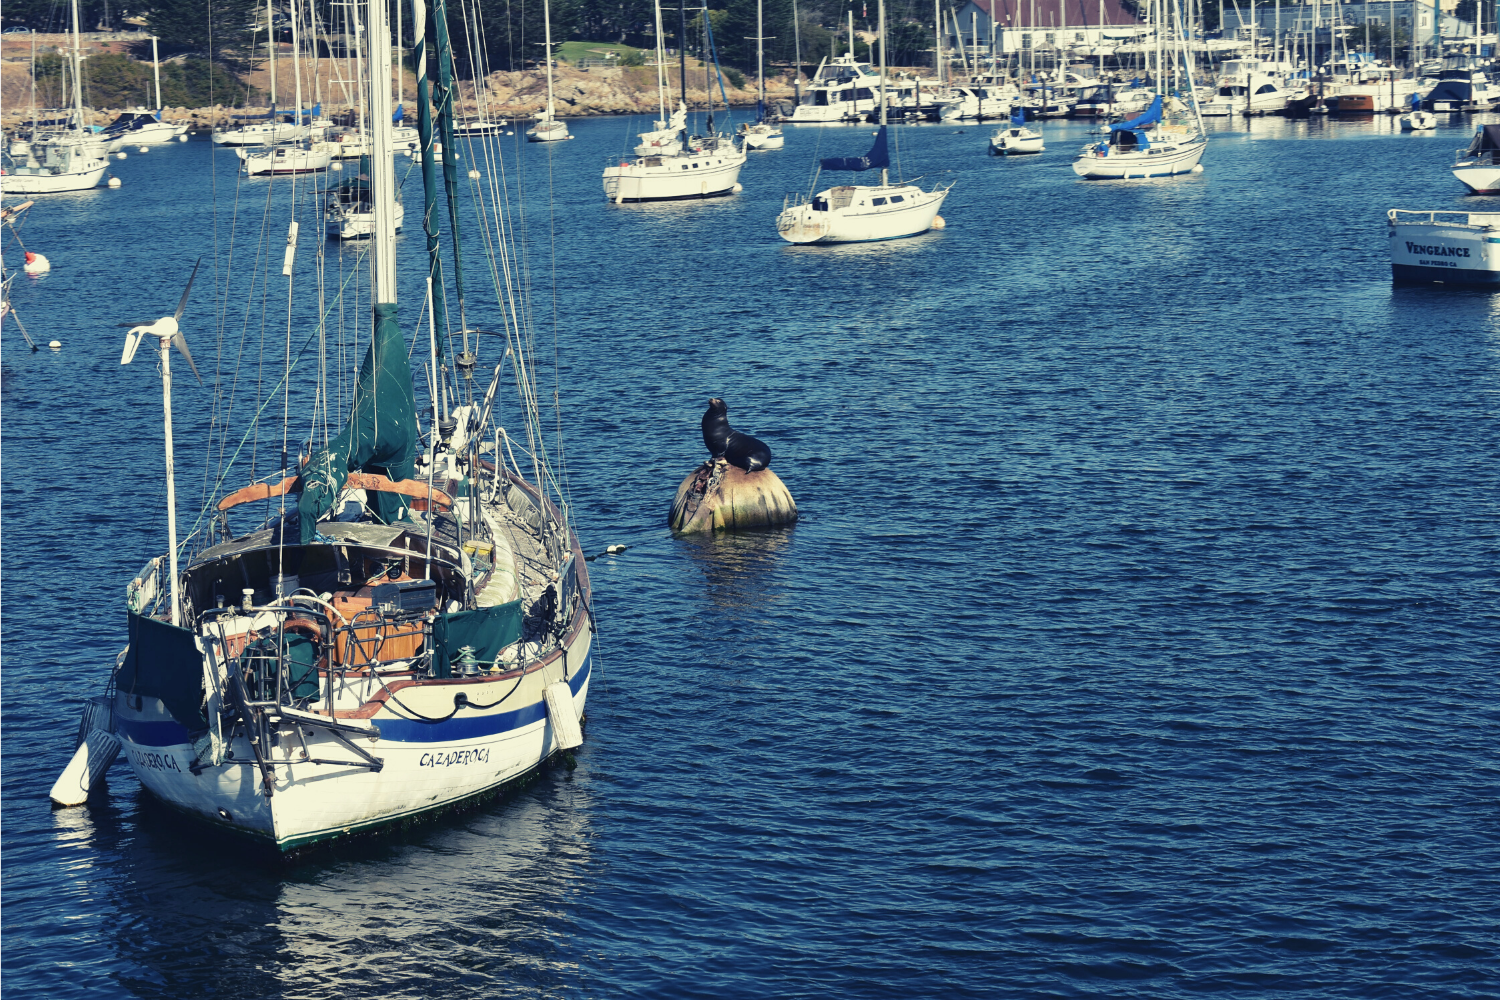 A docked sail boat next to a rock with a seal on it